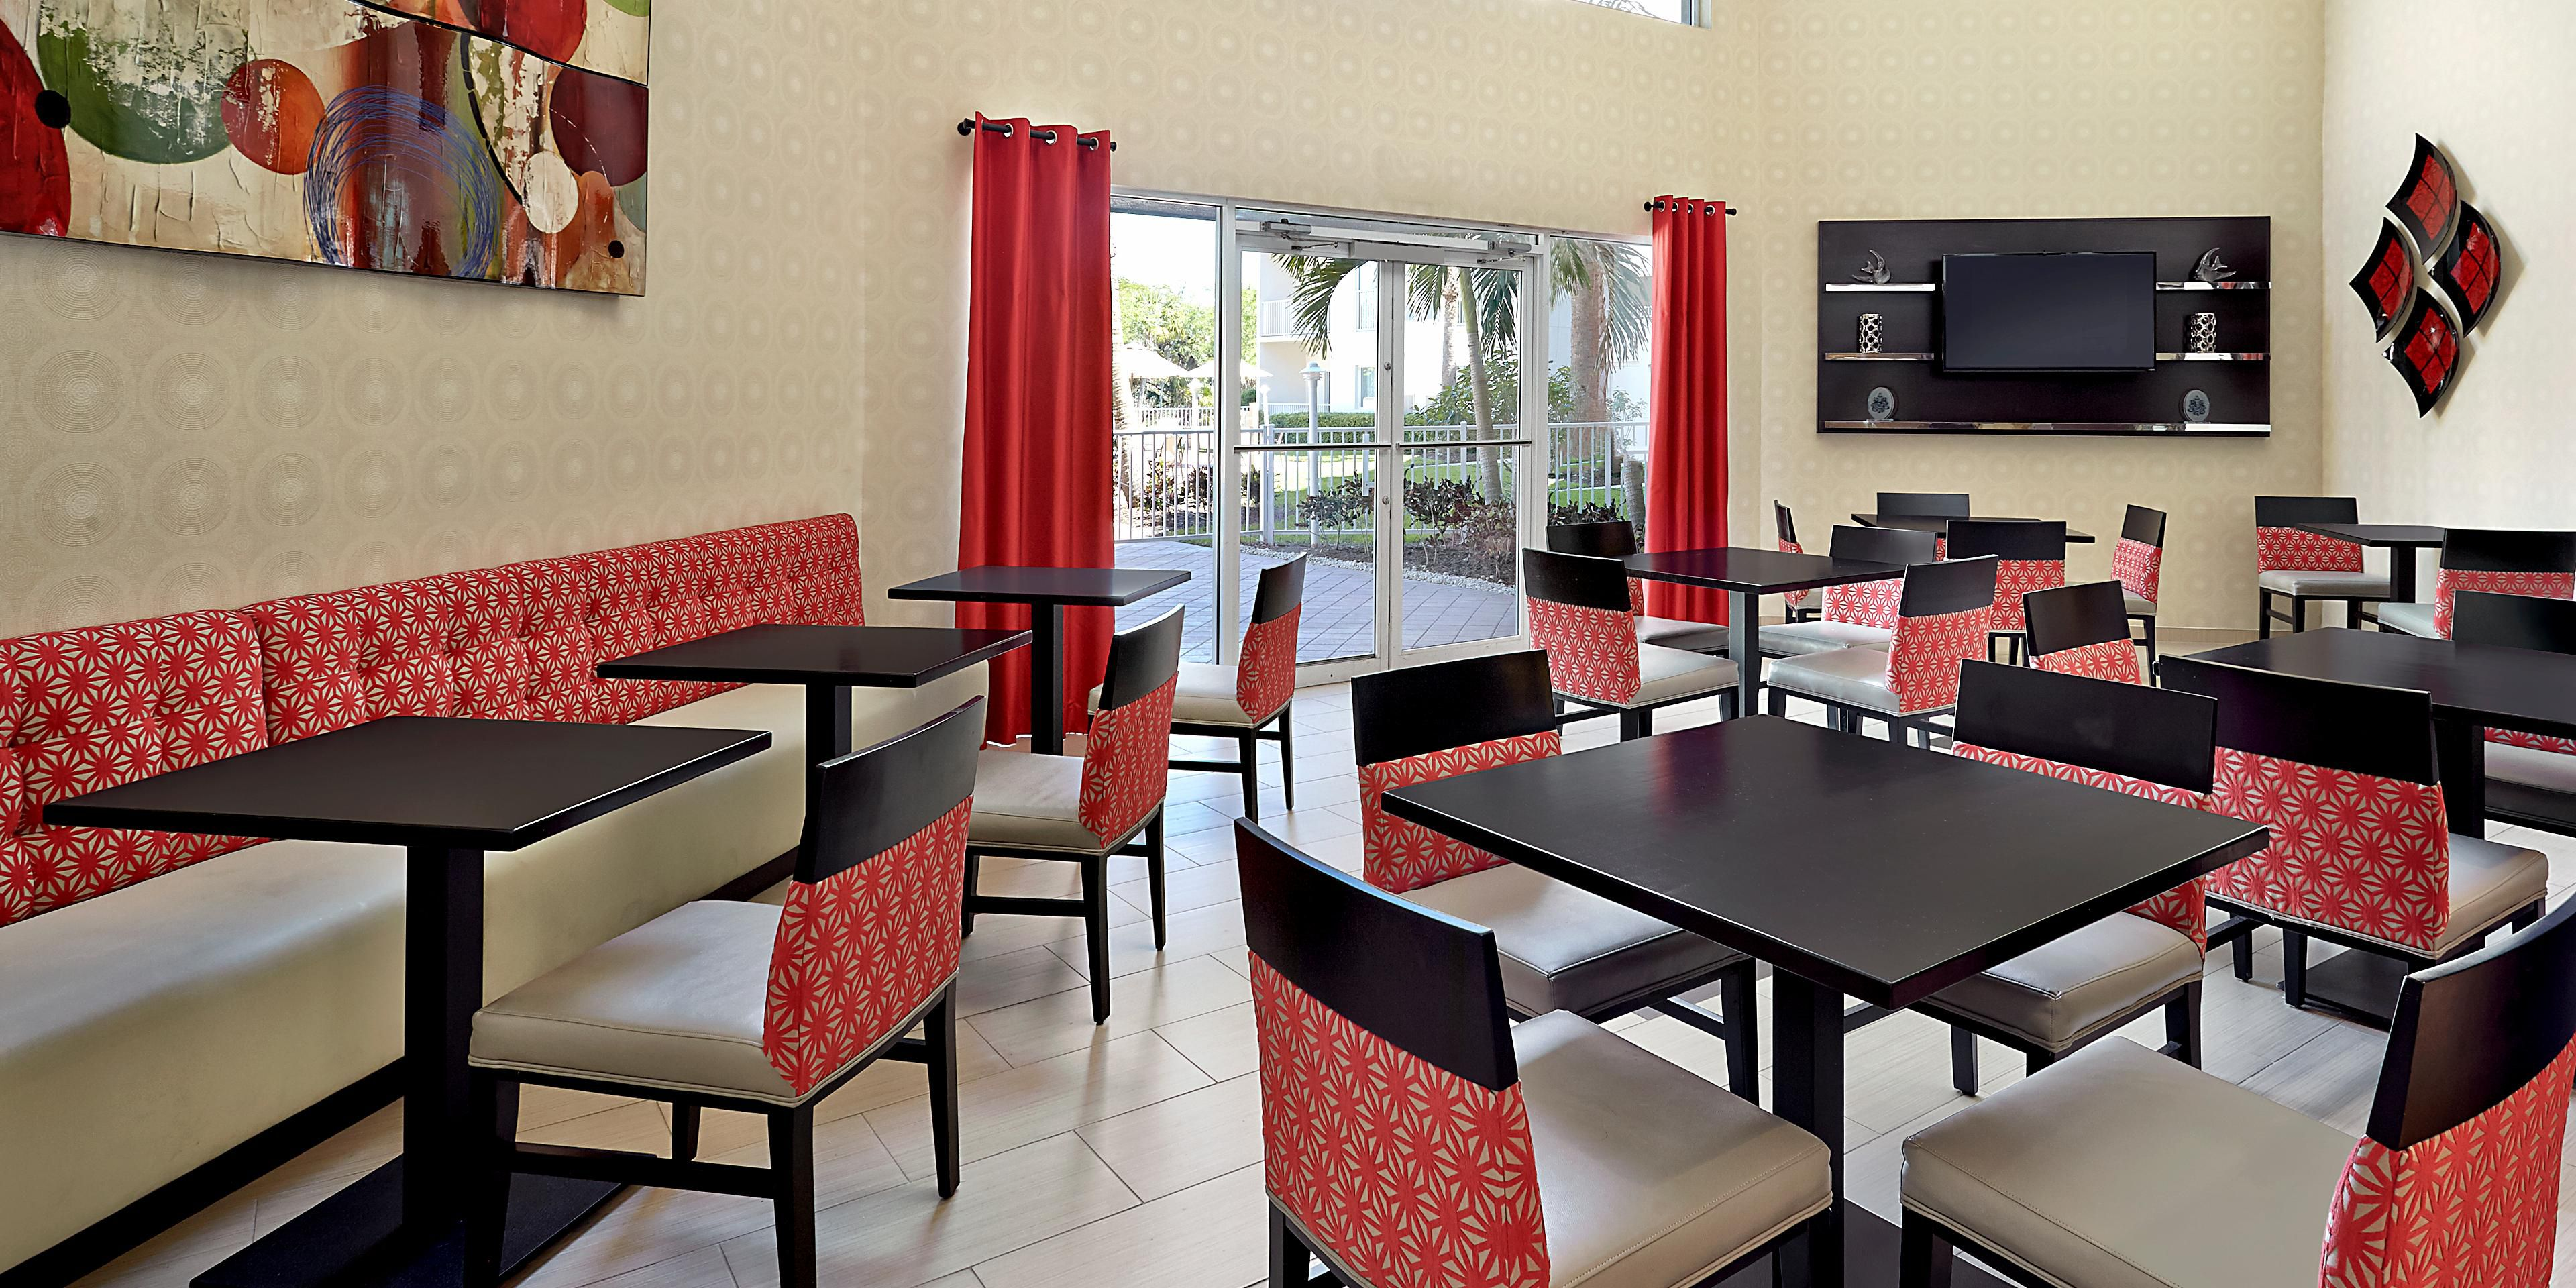 5th avenue hotel in naples, florida - holiday inn express & suites